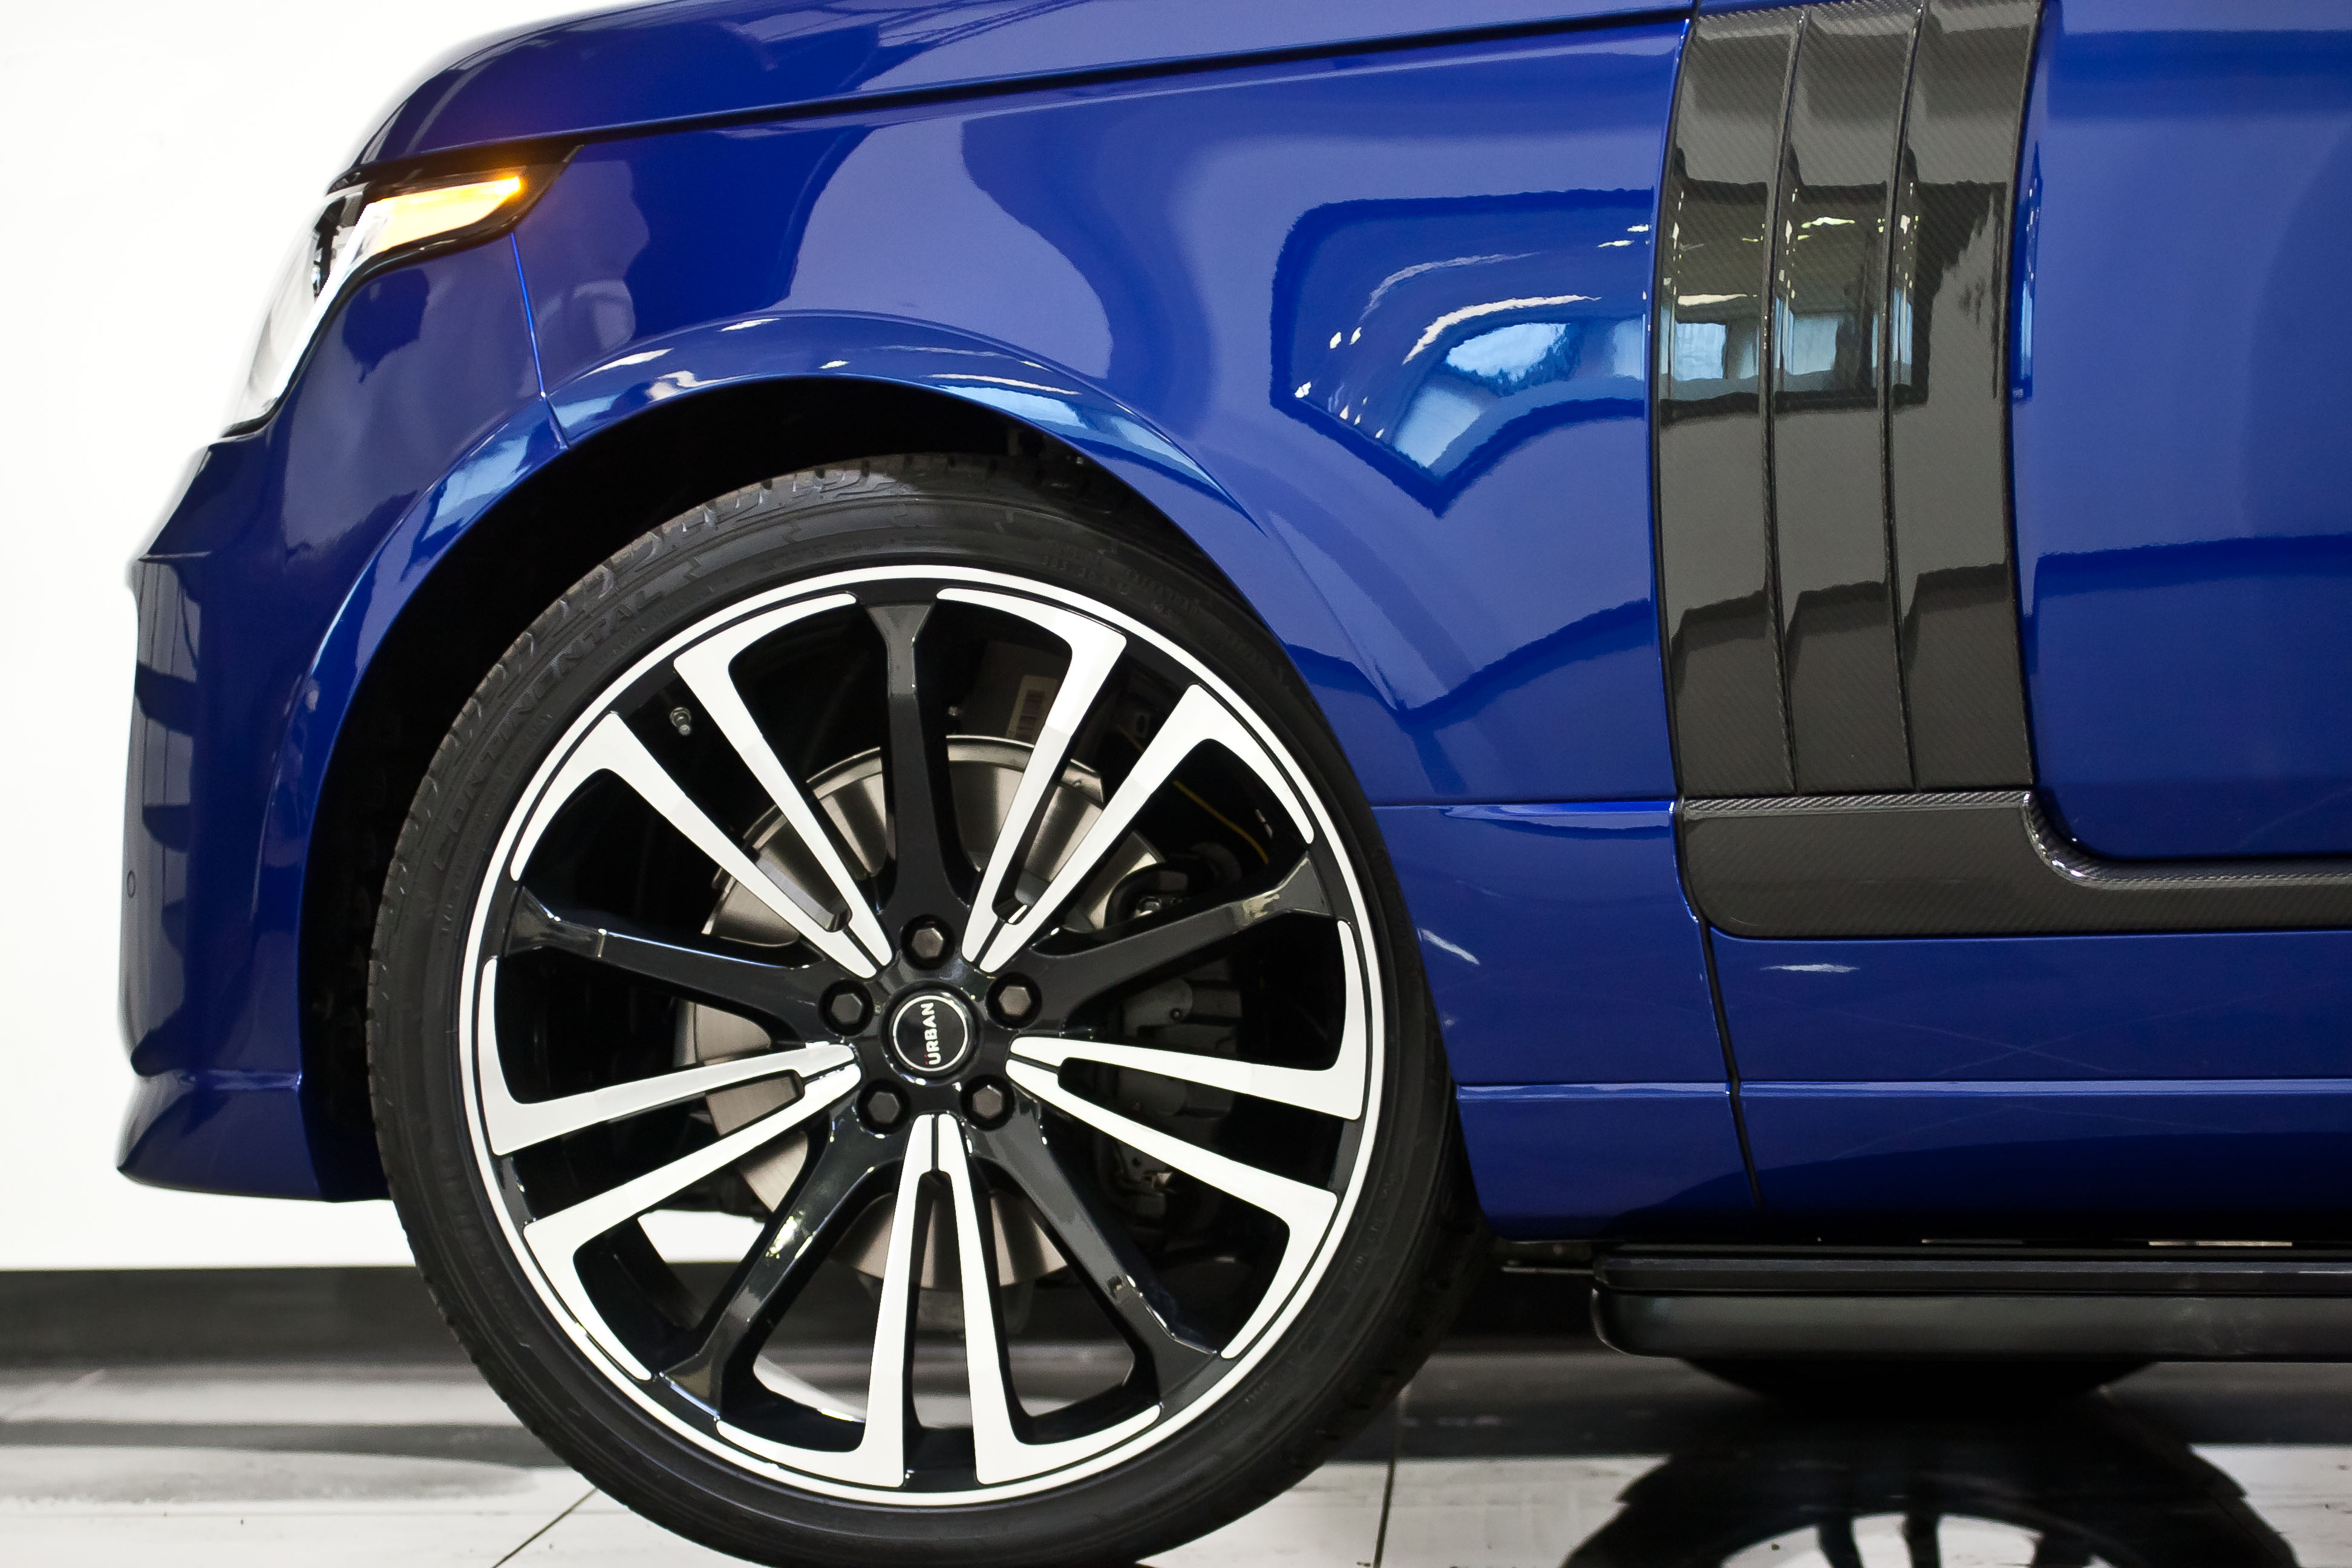 Urvan Range Rover Vogue v2 Estoril Blue48